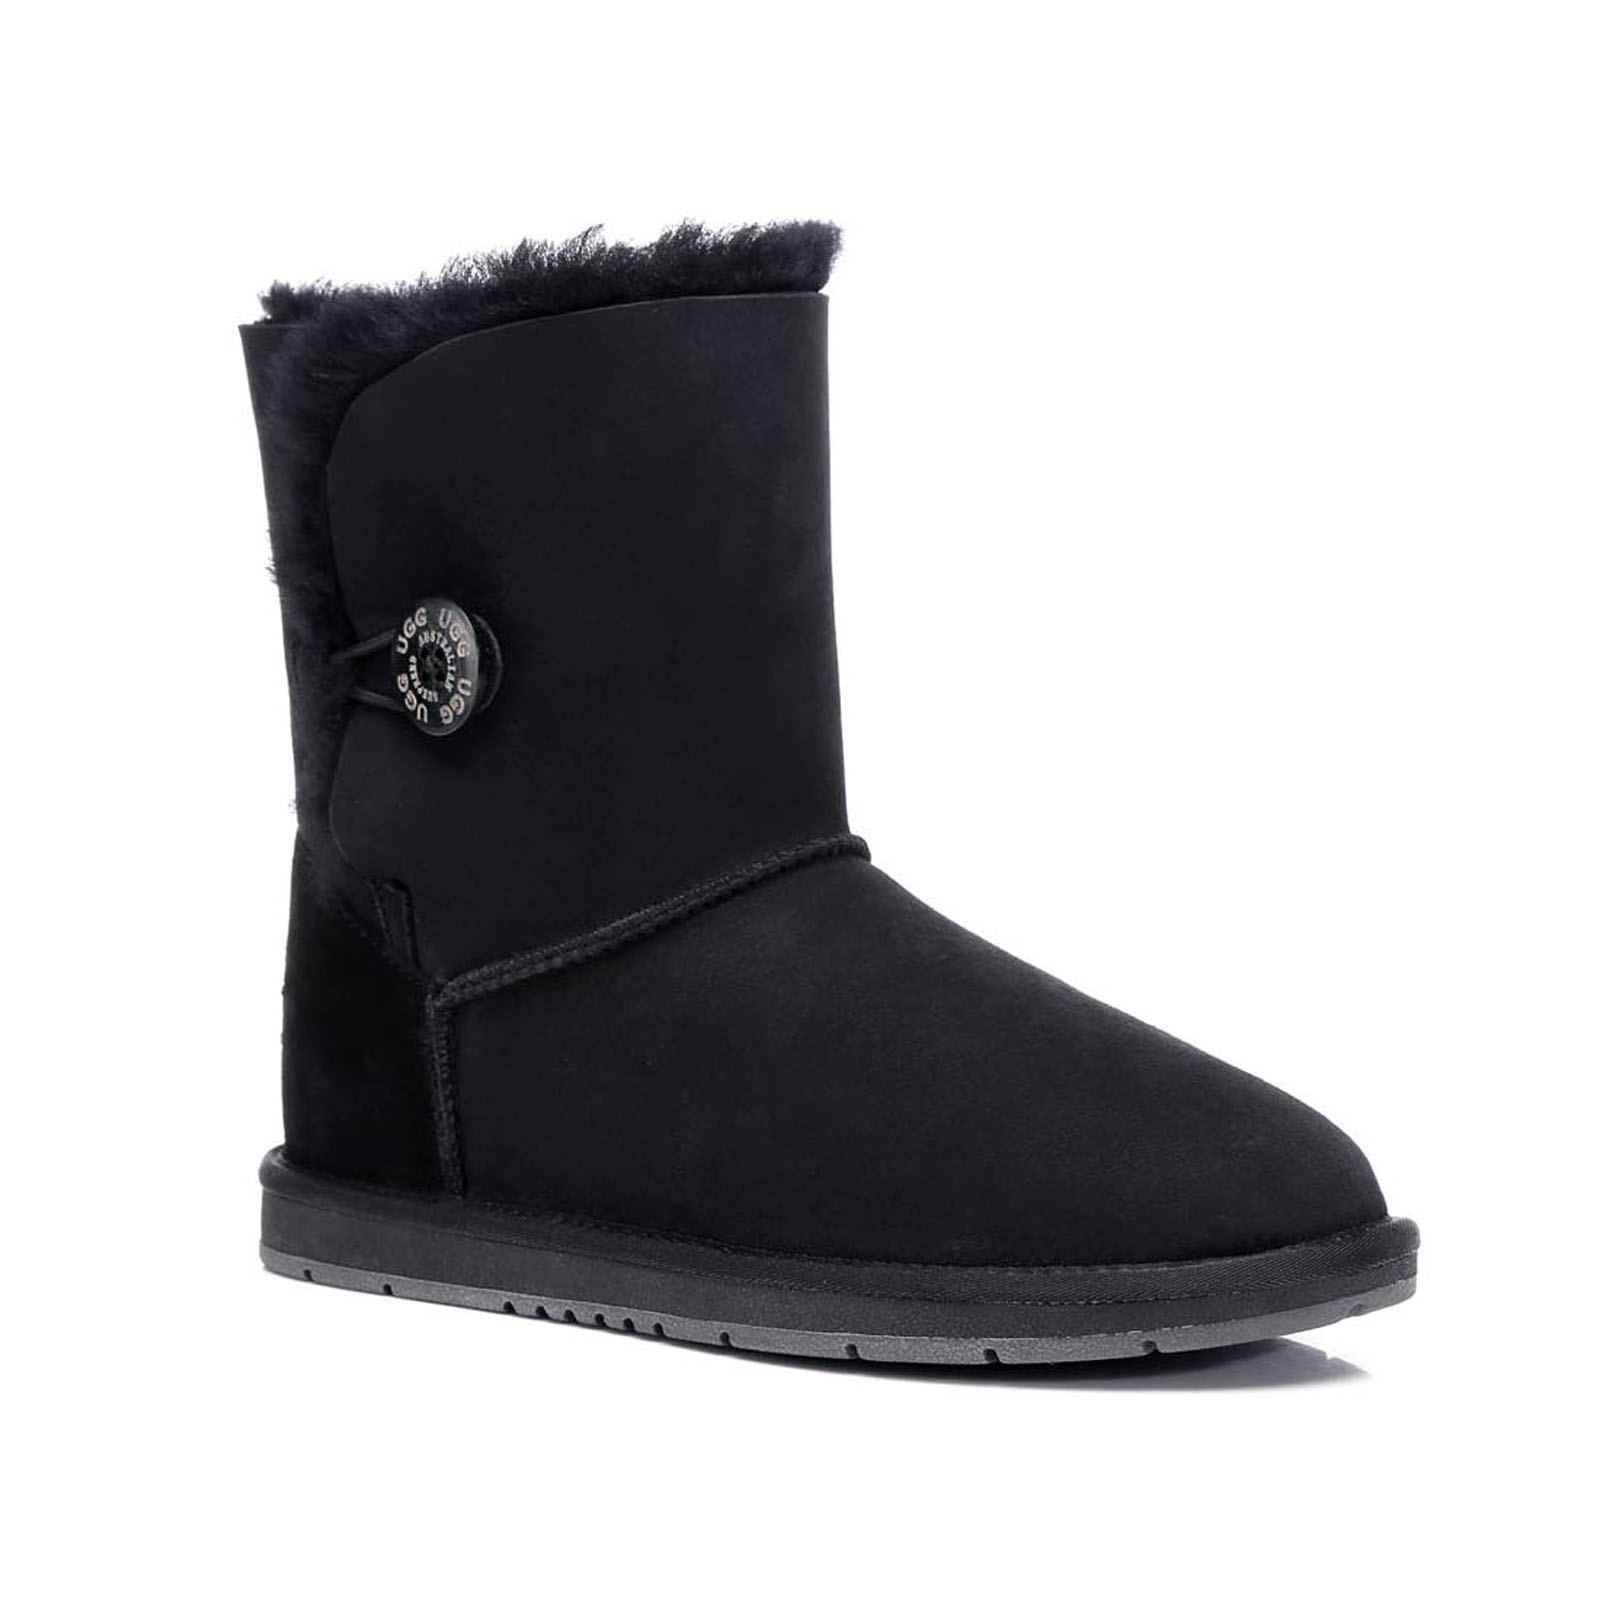 Ugg-Boots-Sheepskin-Classic-Short-Button-Australian-Ladies-